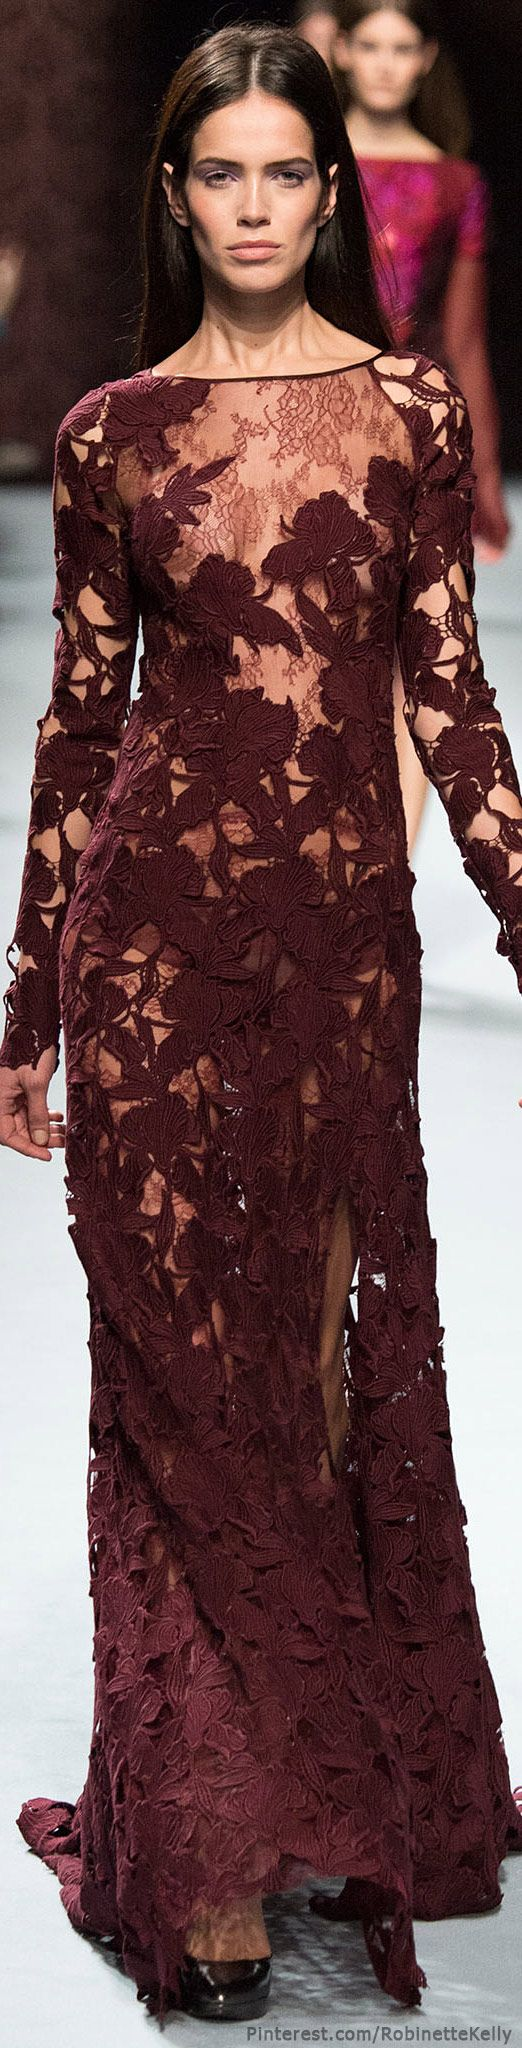 Pantone's color of the year for 2015 - Marsala - Nina Ricci | F/W 2014 RTW